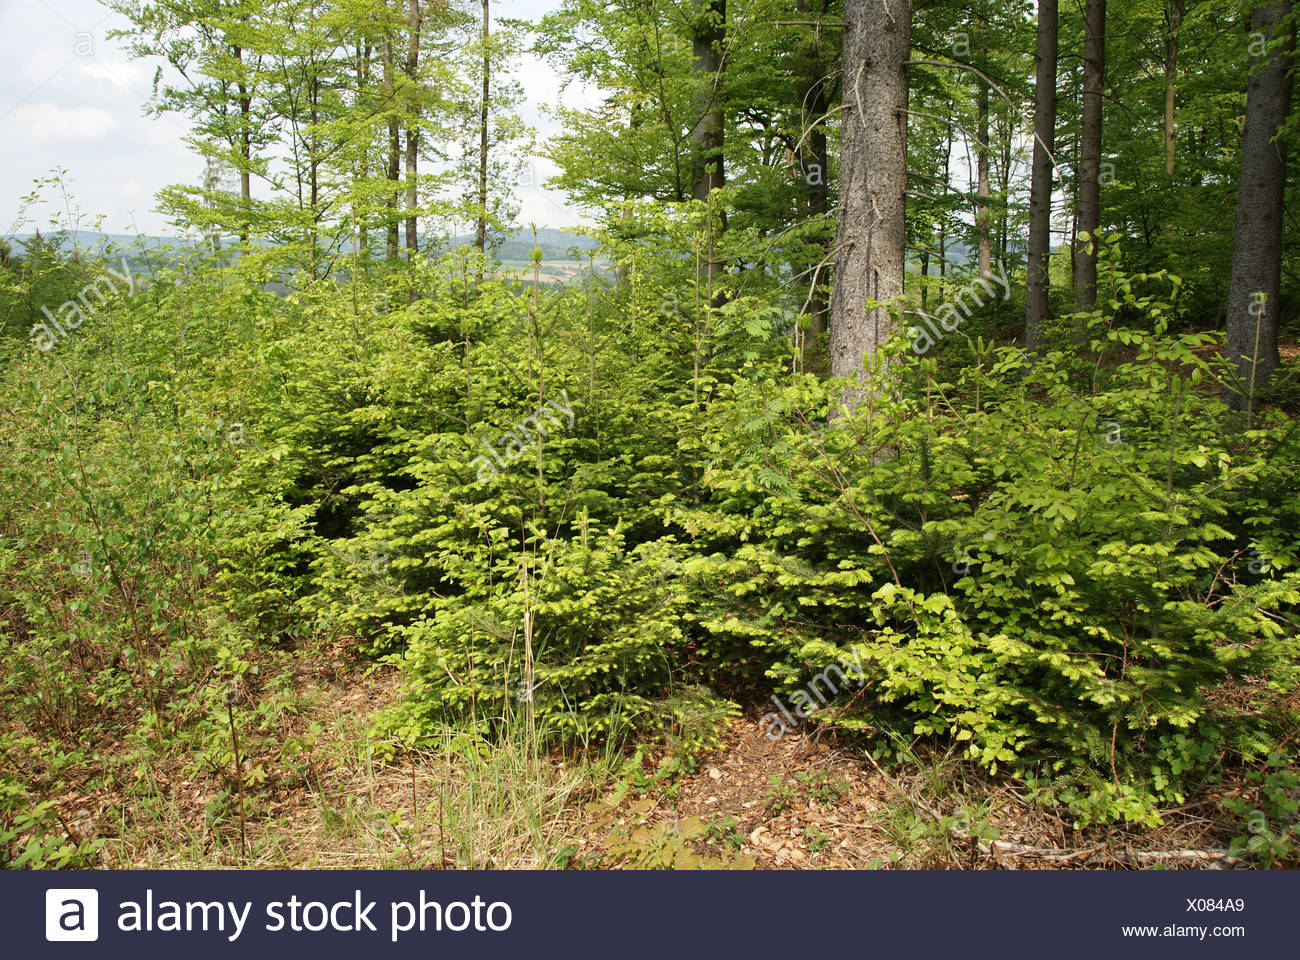 Abies alba, Tannen, firs - Stock Image